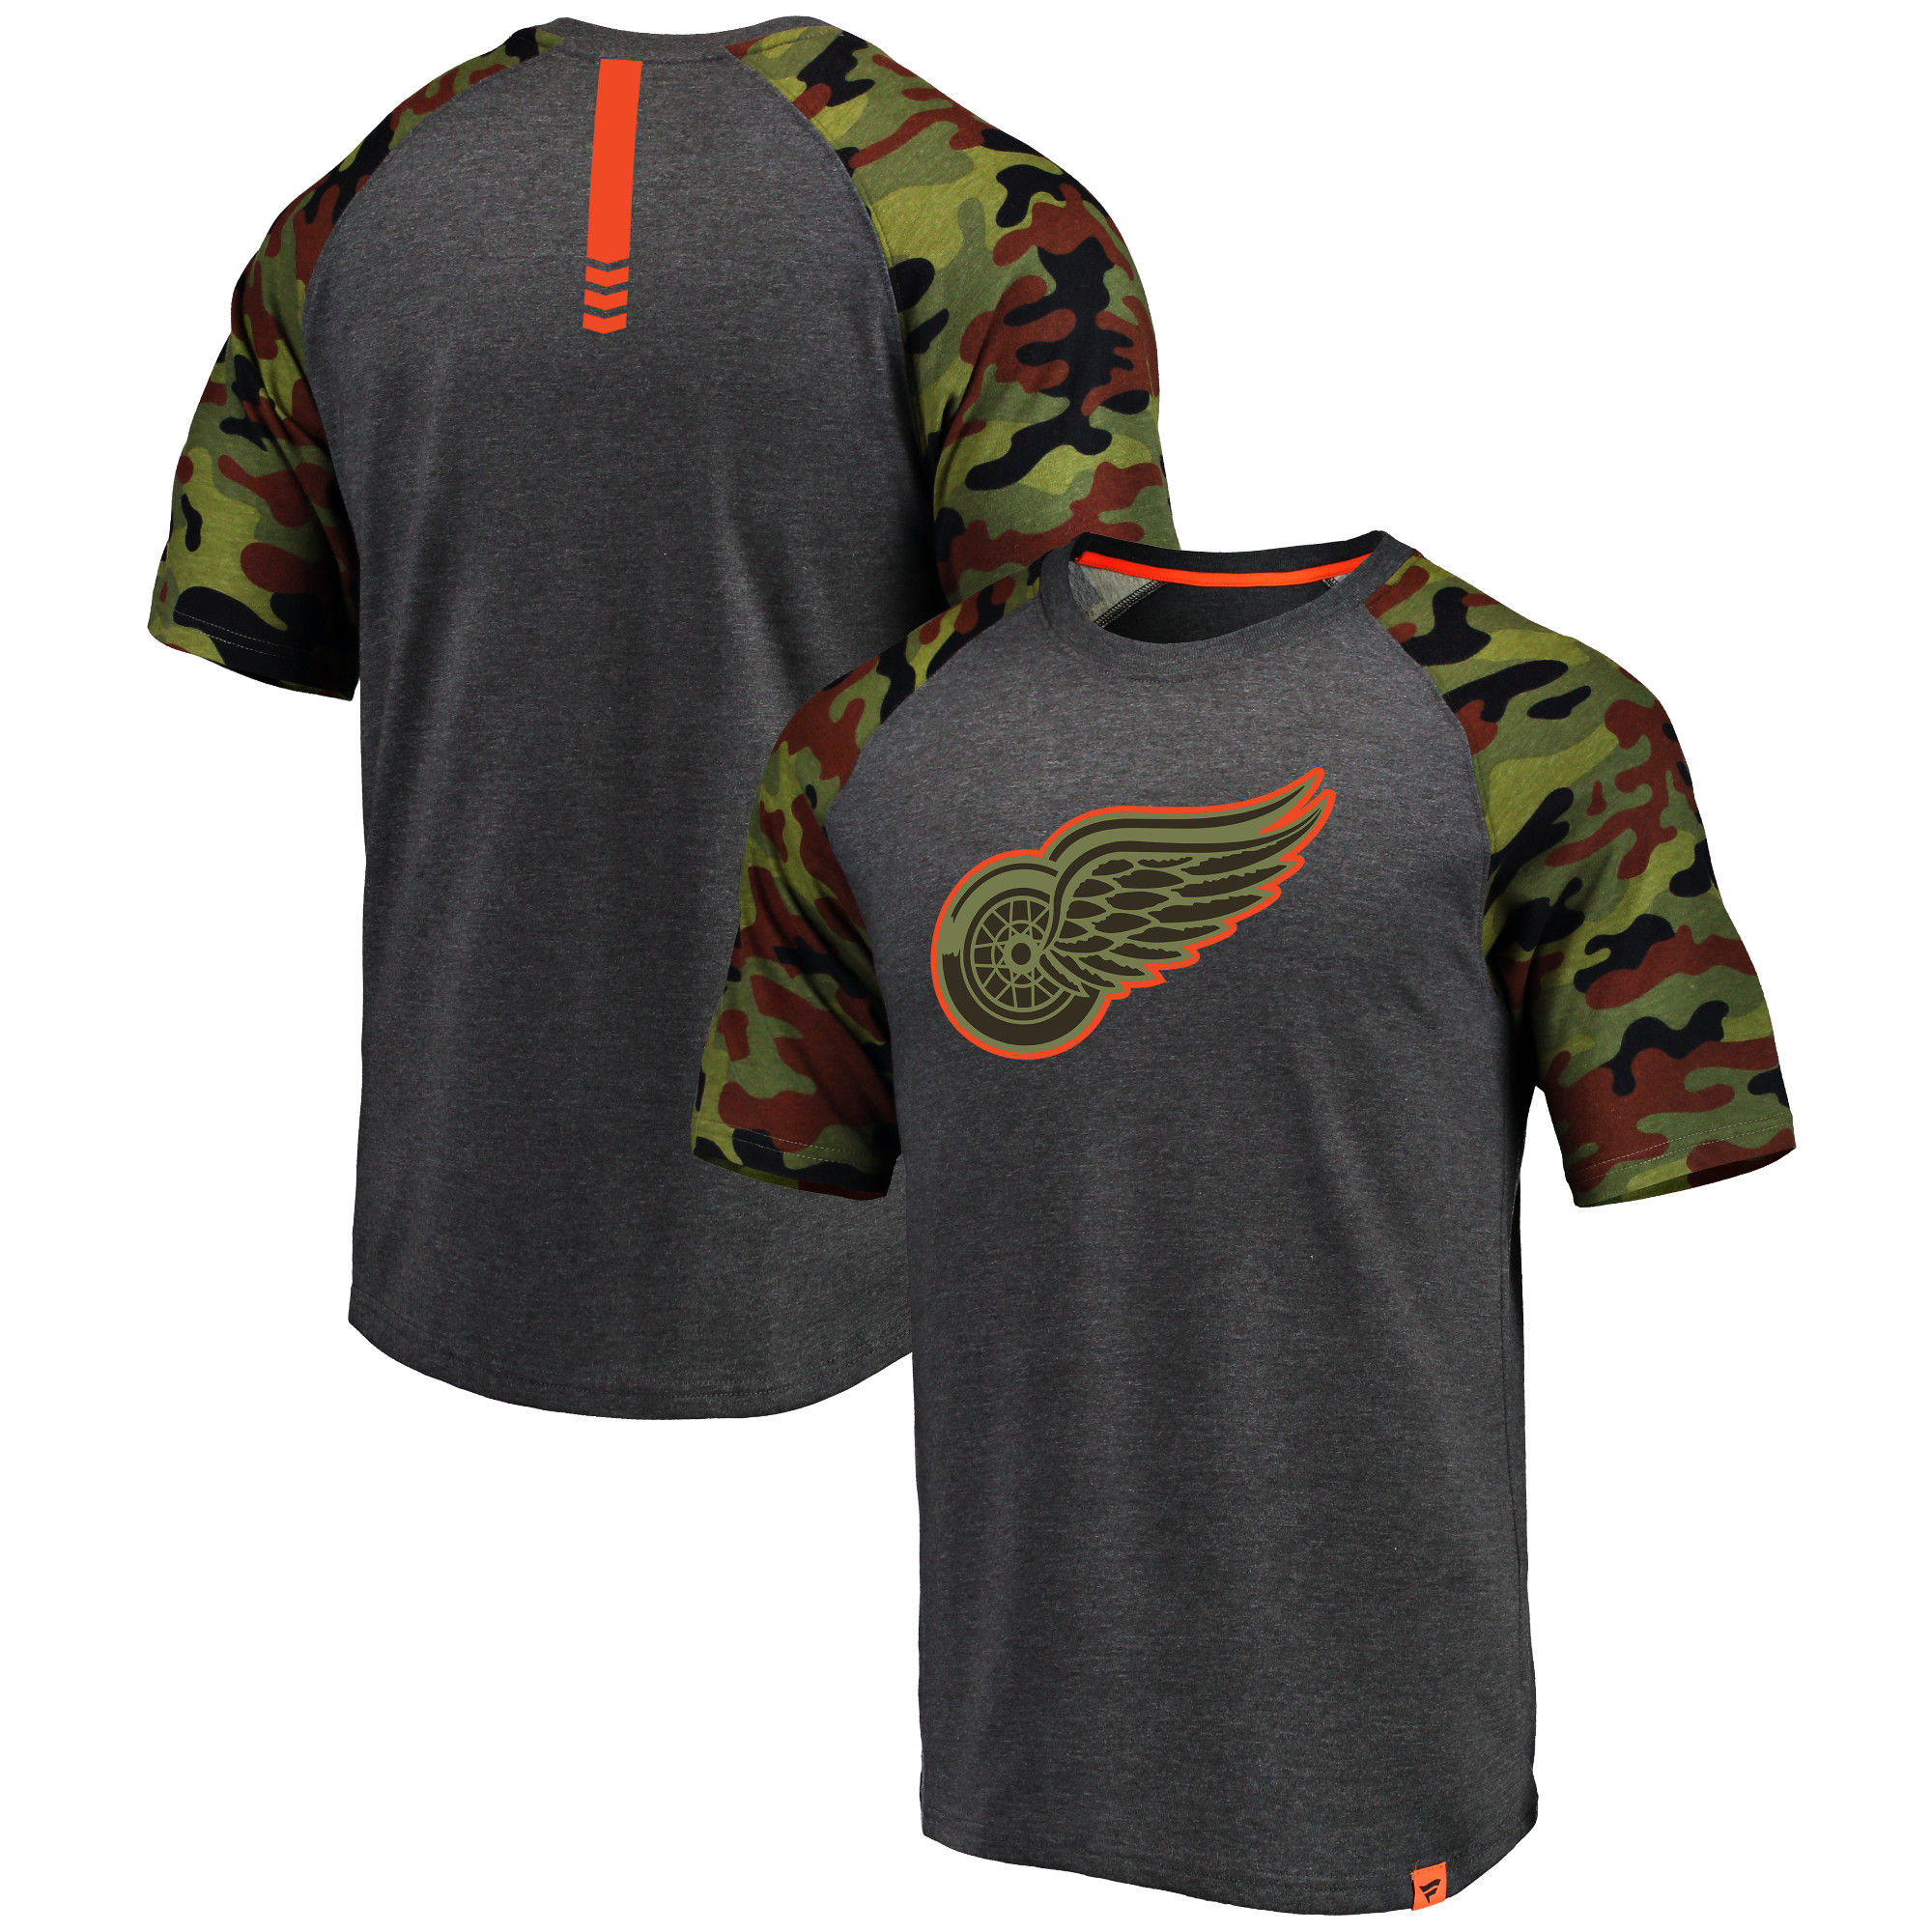 Detroit Red Wings Fanatics Branded Heathered Gray/Camo Recon Camo Raglan T-Shirt